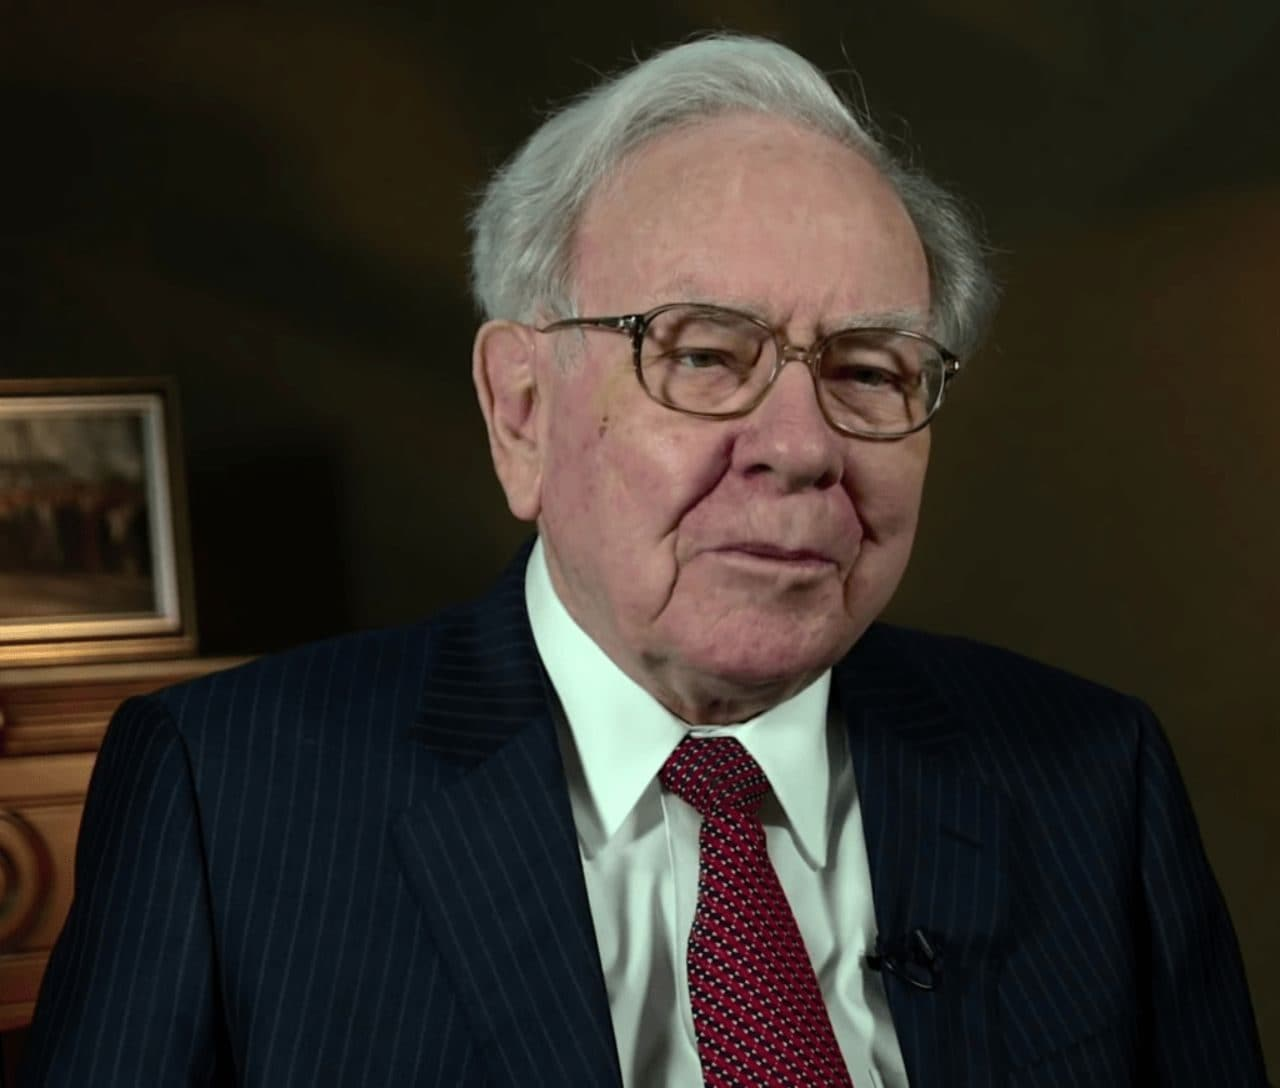 워렌 버핏, Warren Buffett, Image - USA International Trade Association